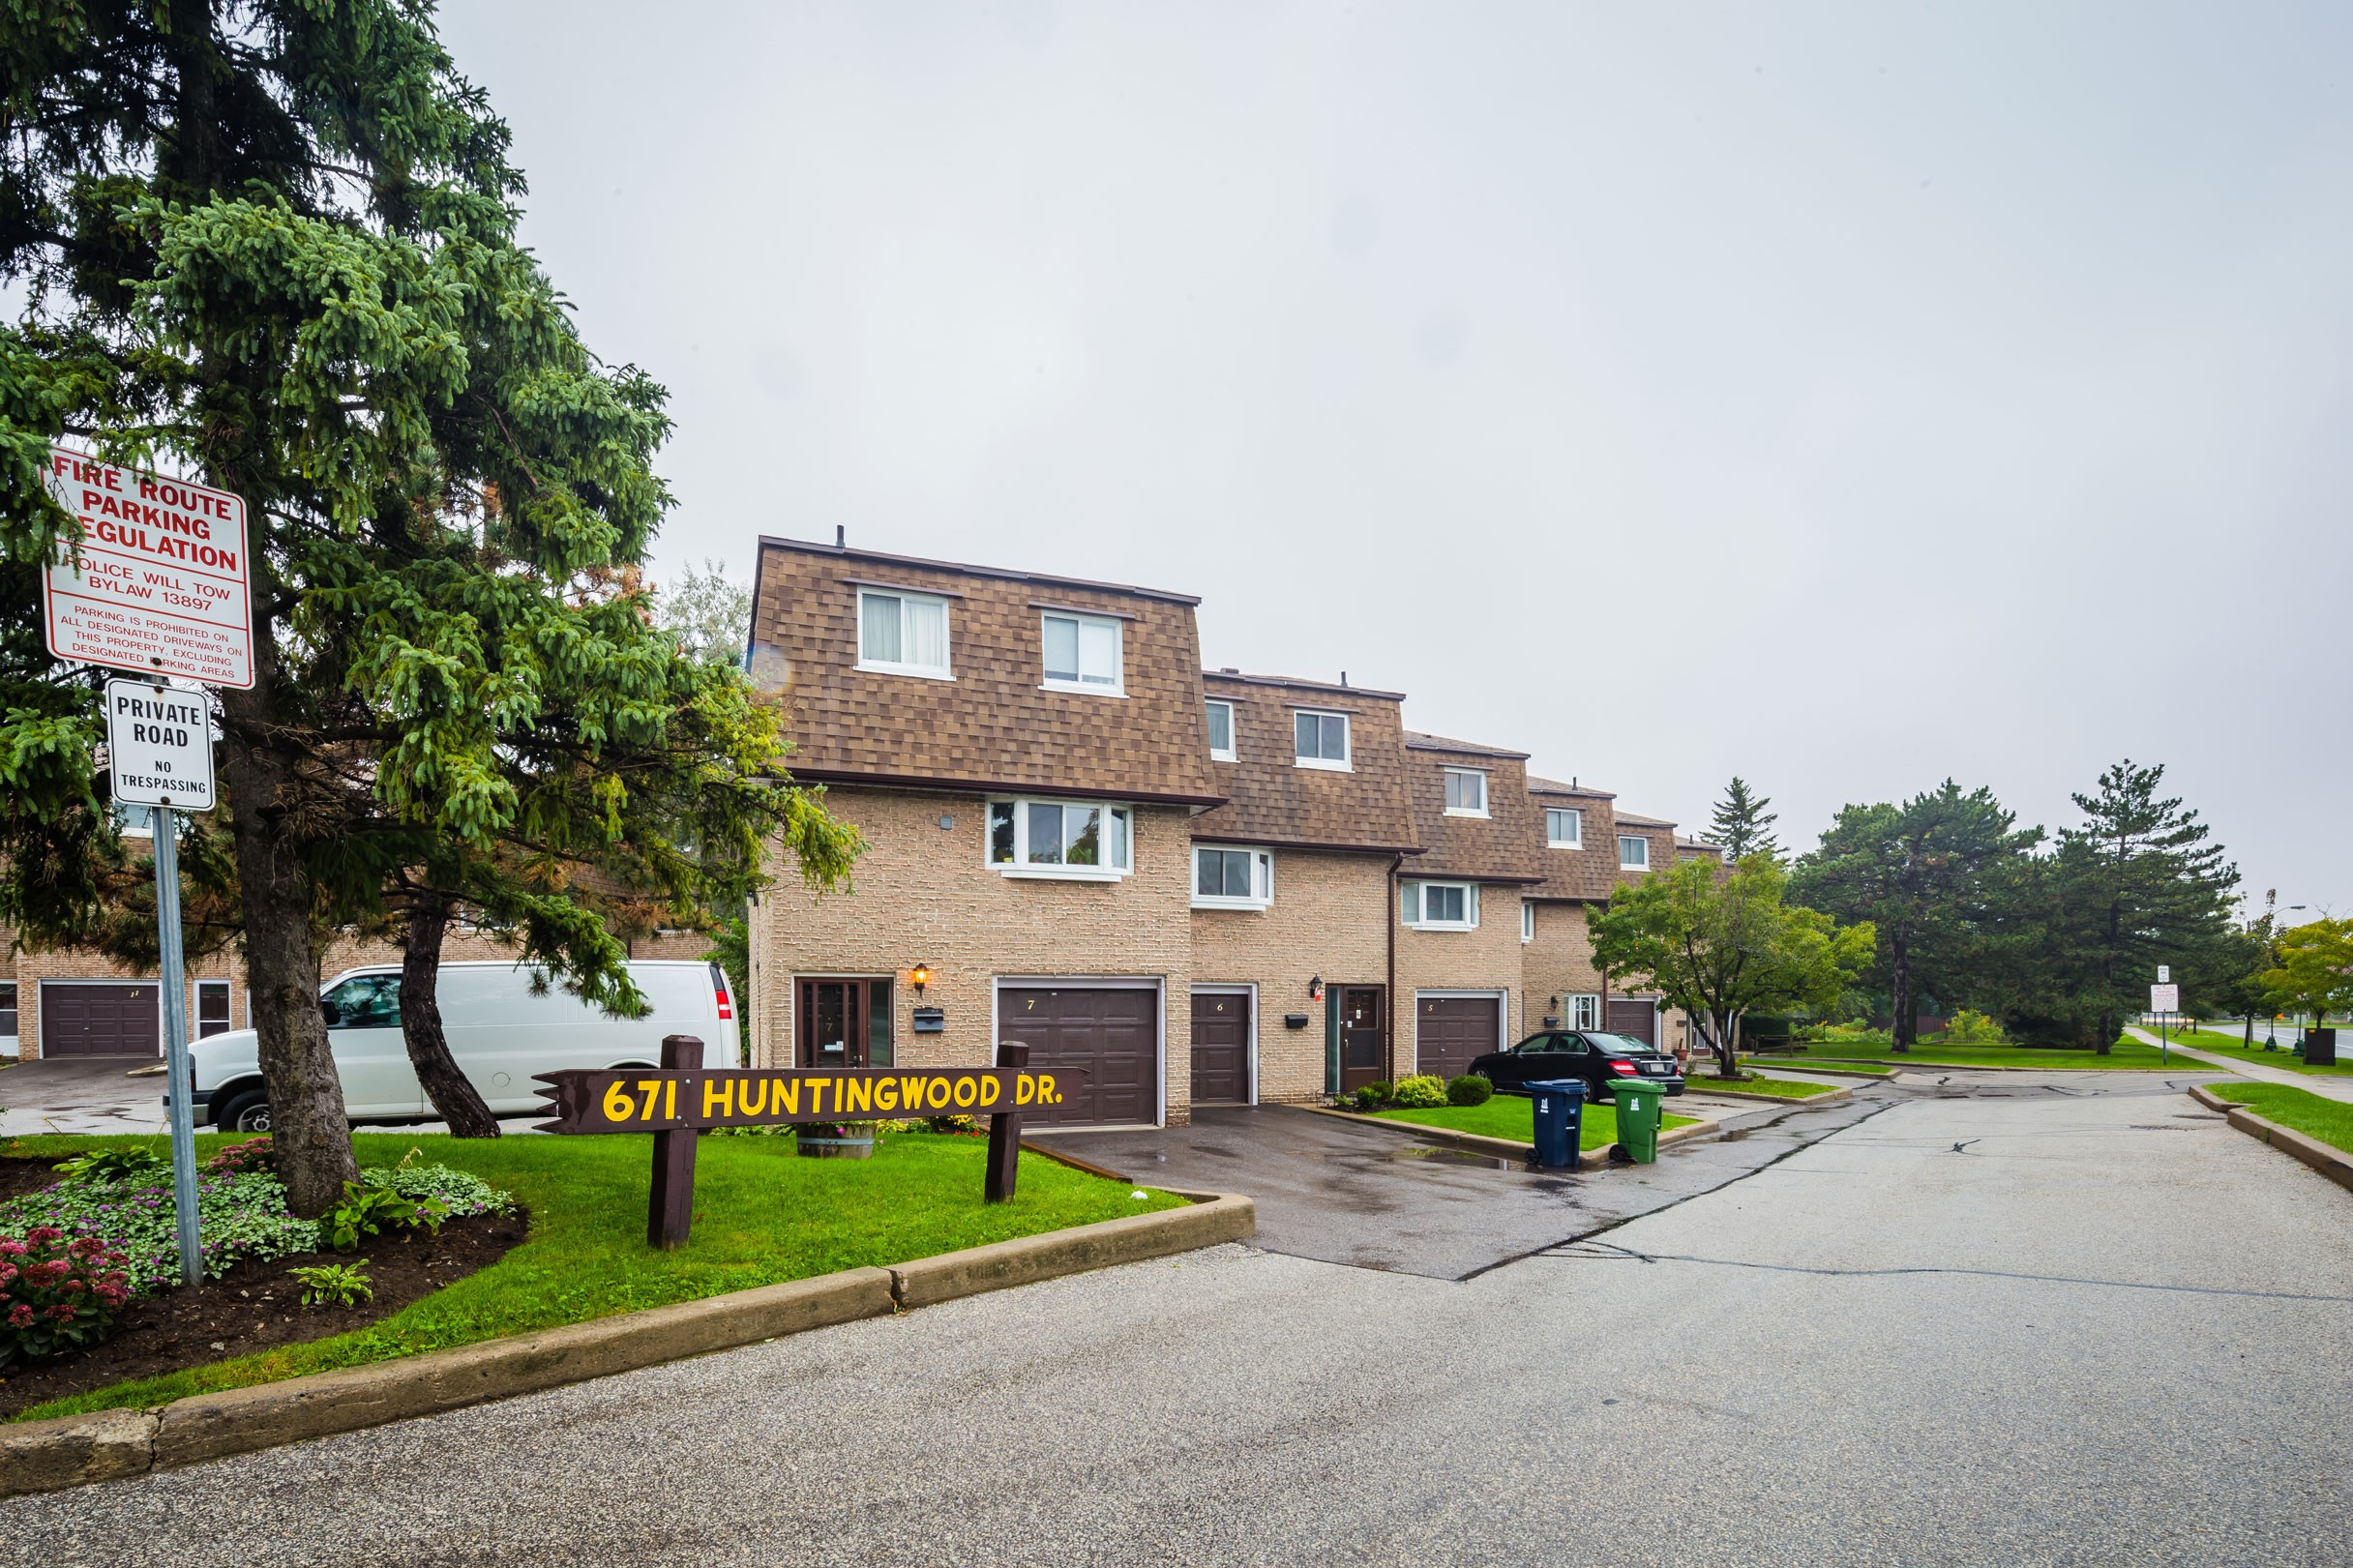 671 Huntingwood Drive Townhouses at 671 Huntingwood Dr, Toronto 0